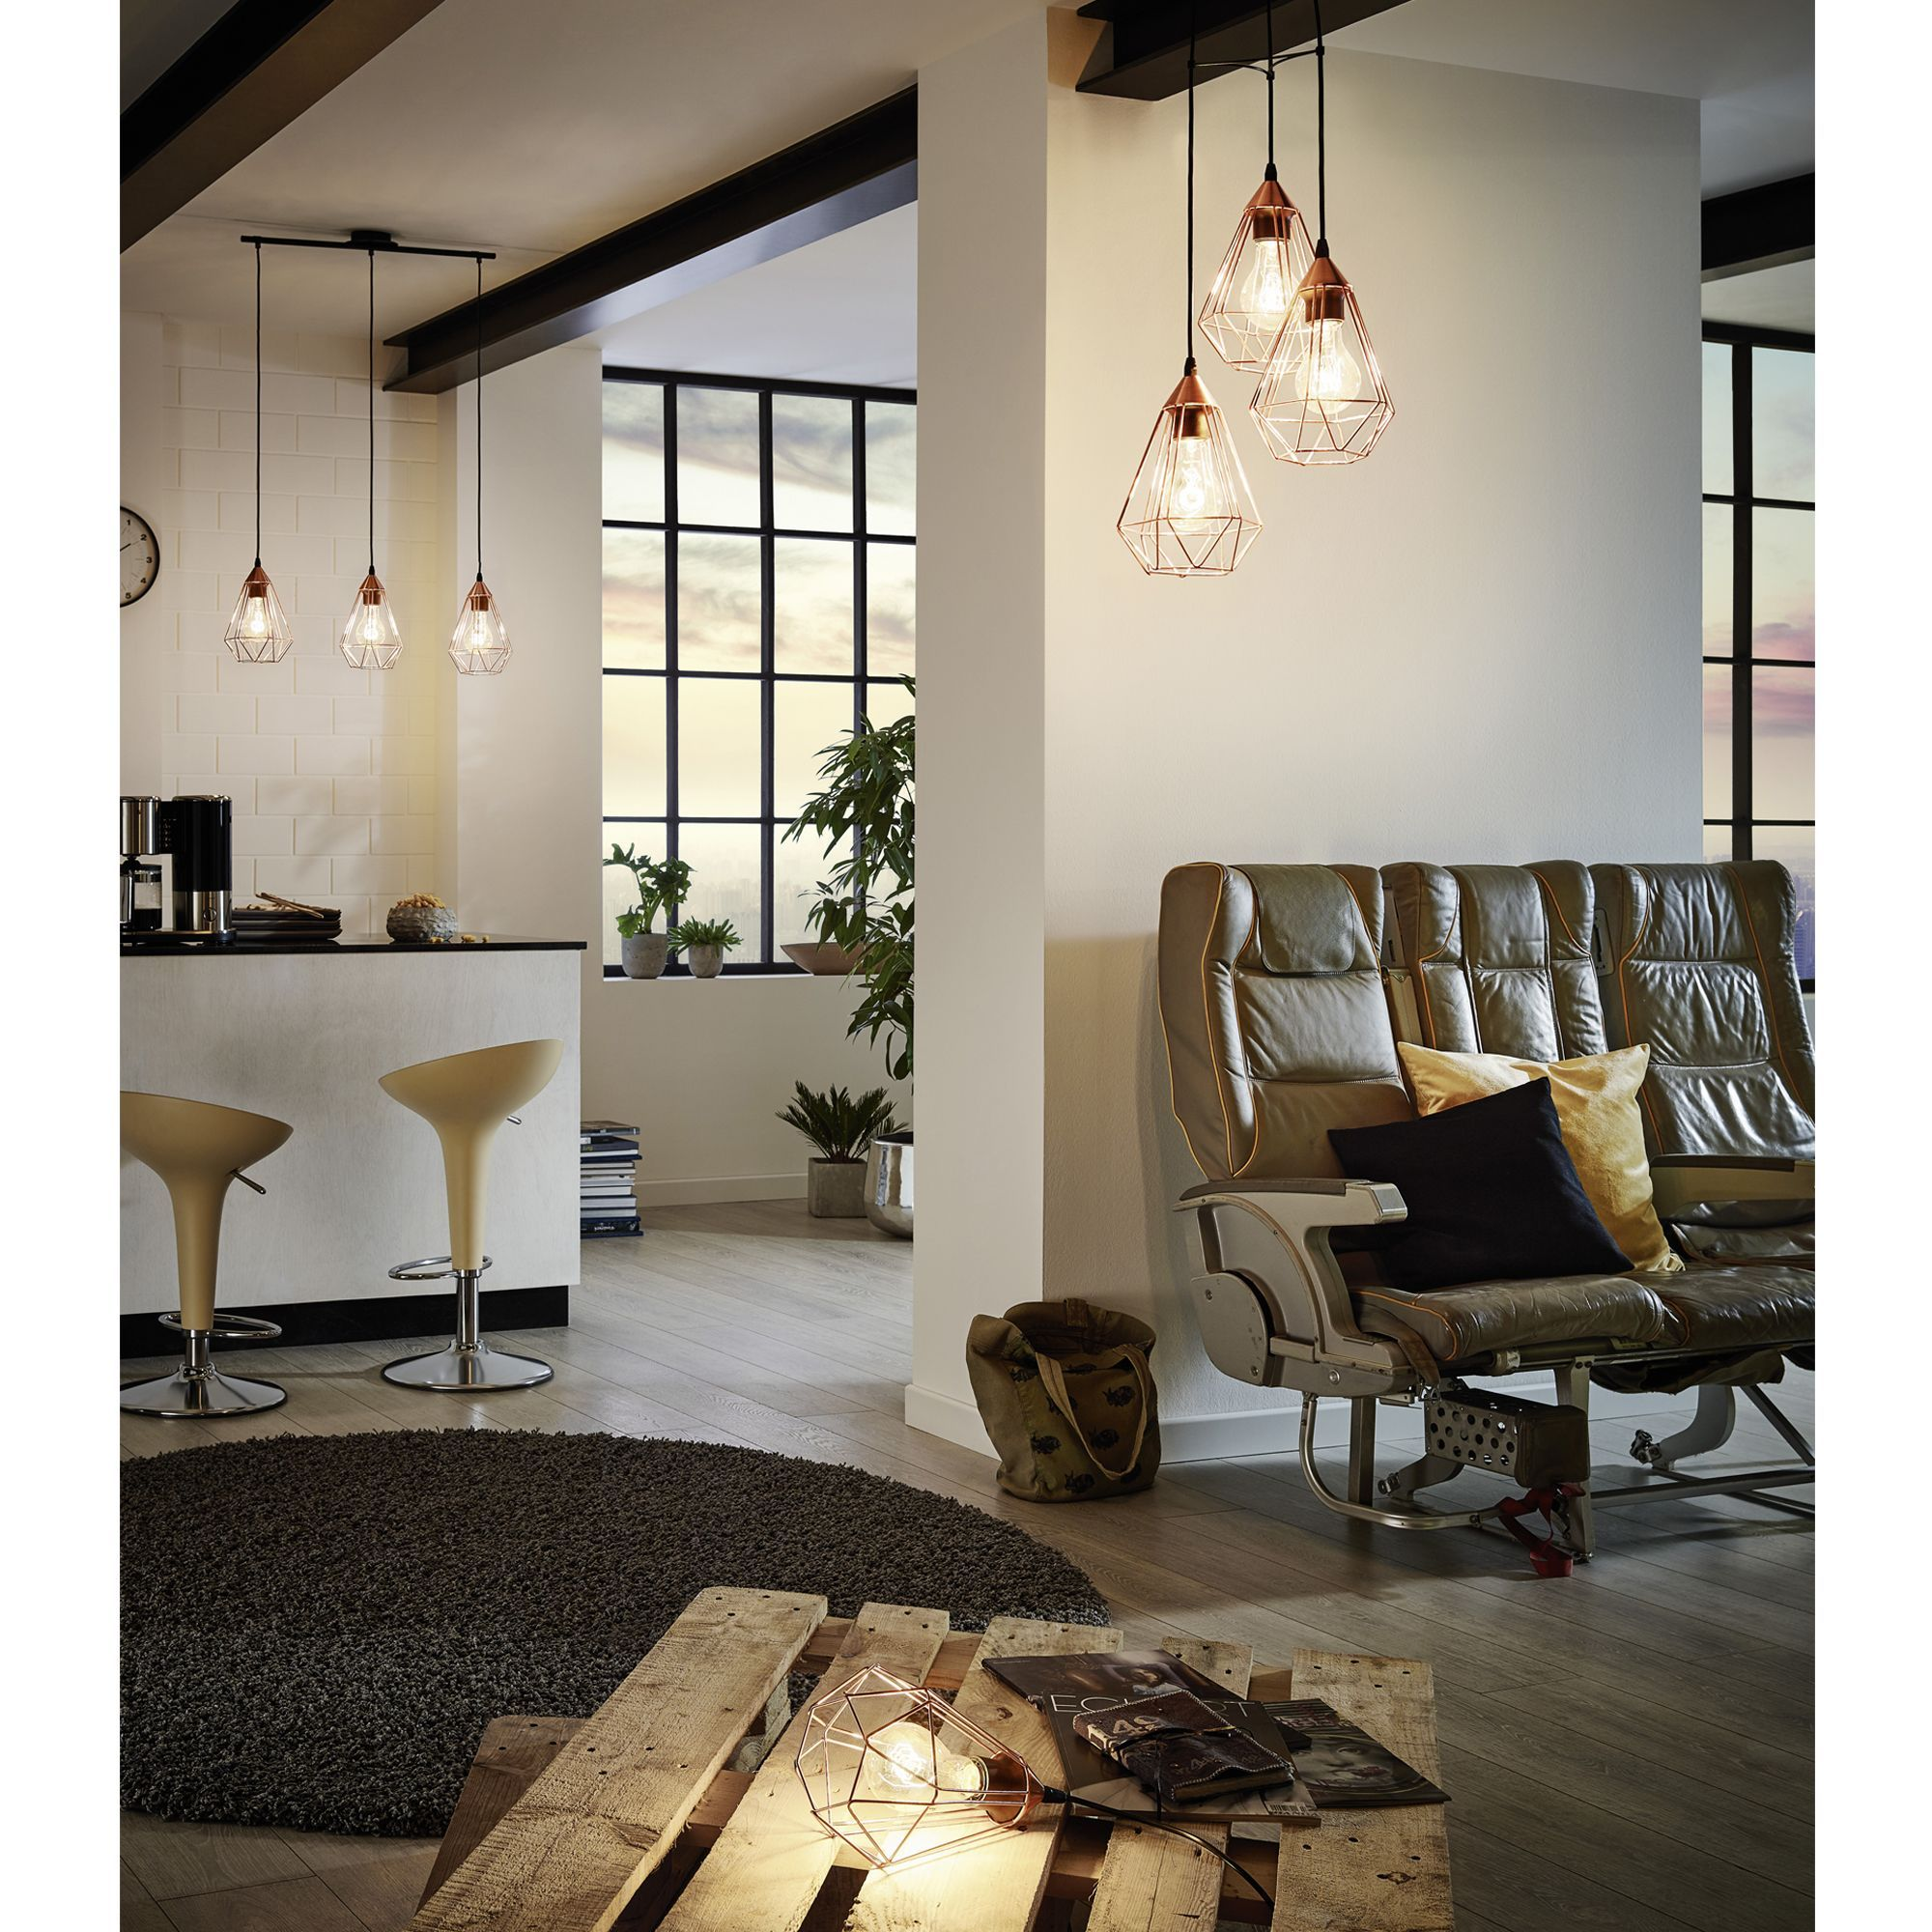 Lampadaire De Salon Design Luminaire Salon Lampe De Salon Design Pas Cher Aquatic Club